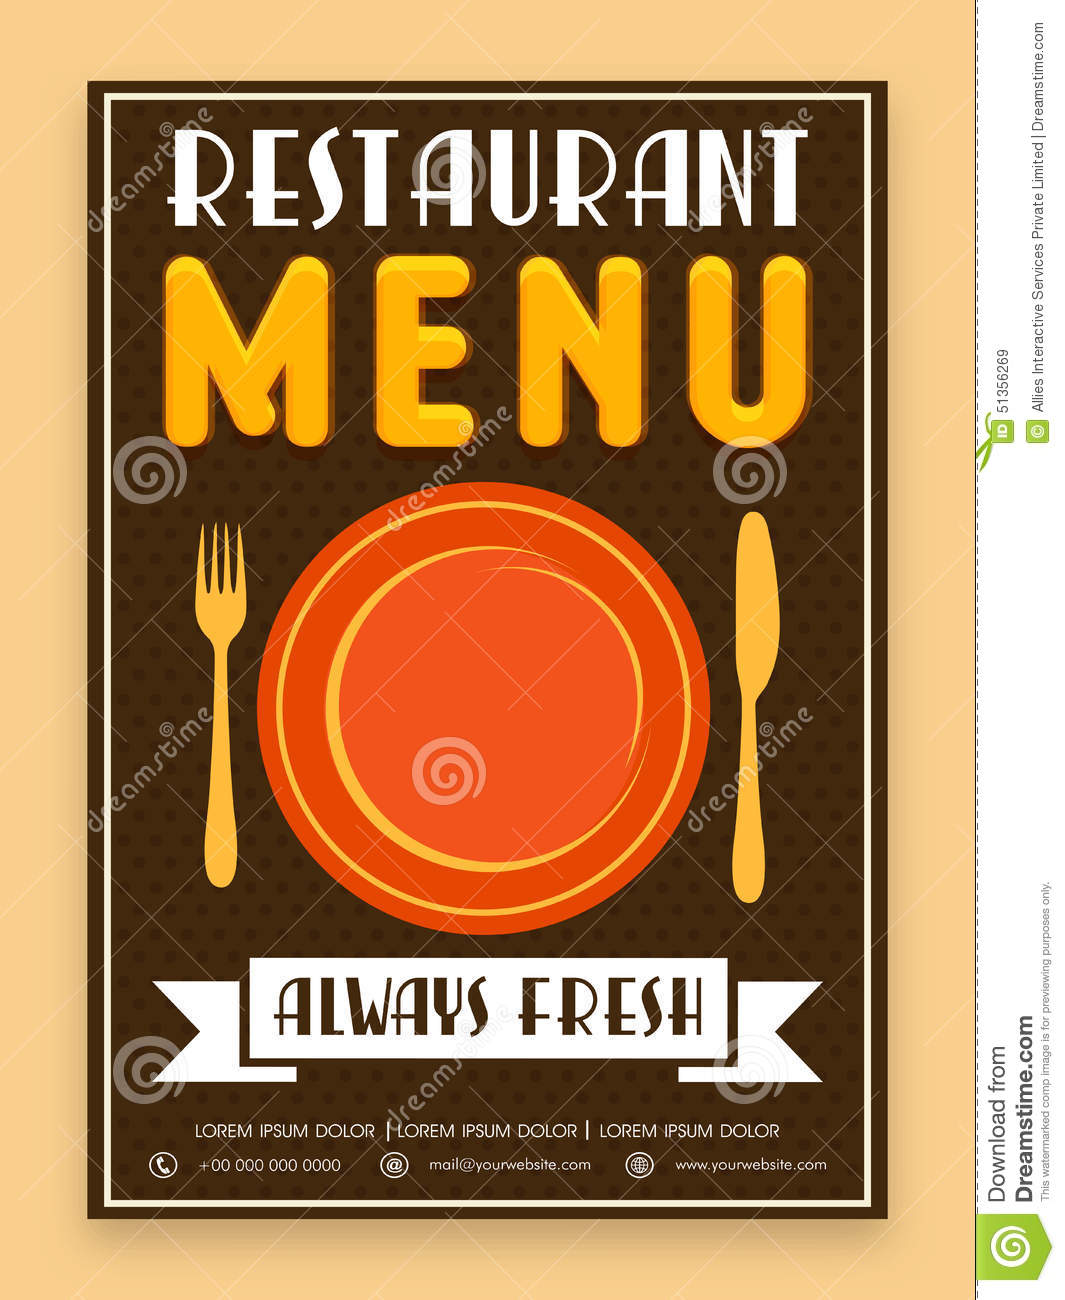 Menu Card Design For Restaurant. Stock Illustration - Image: 51356269